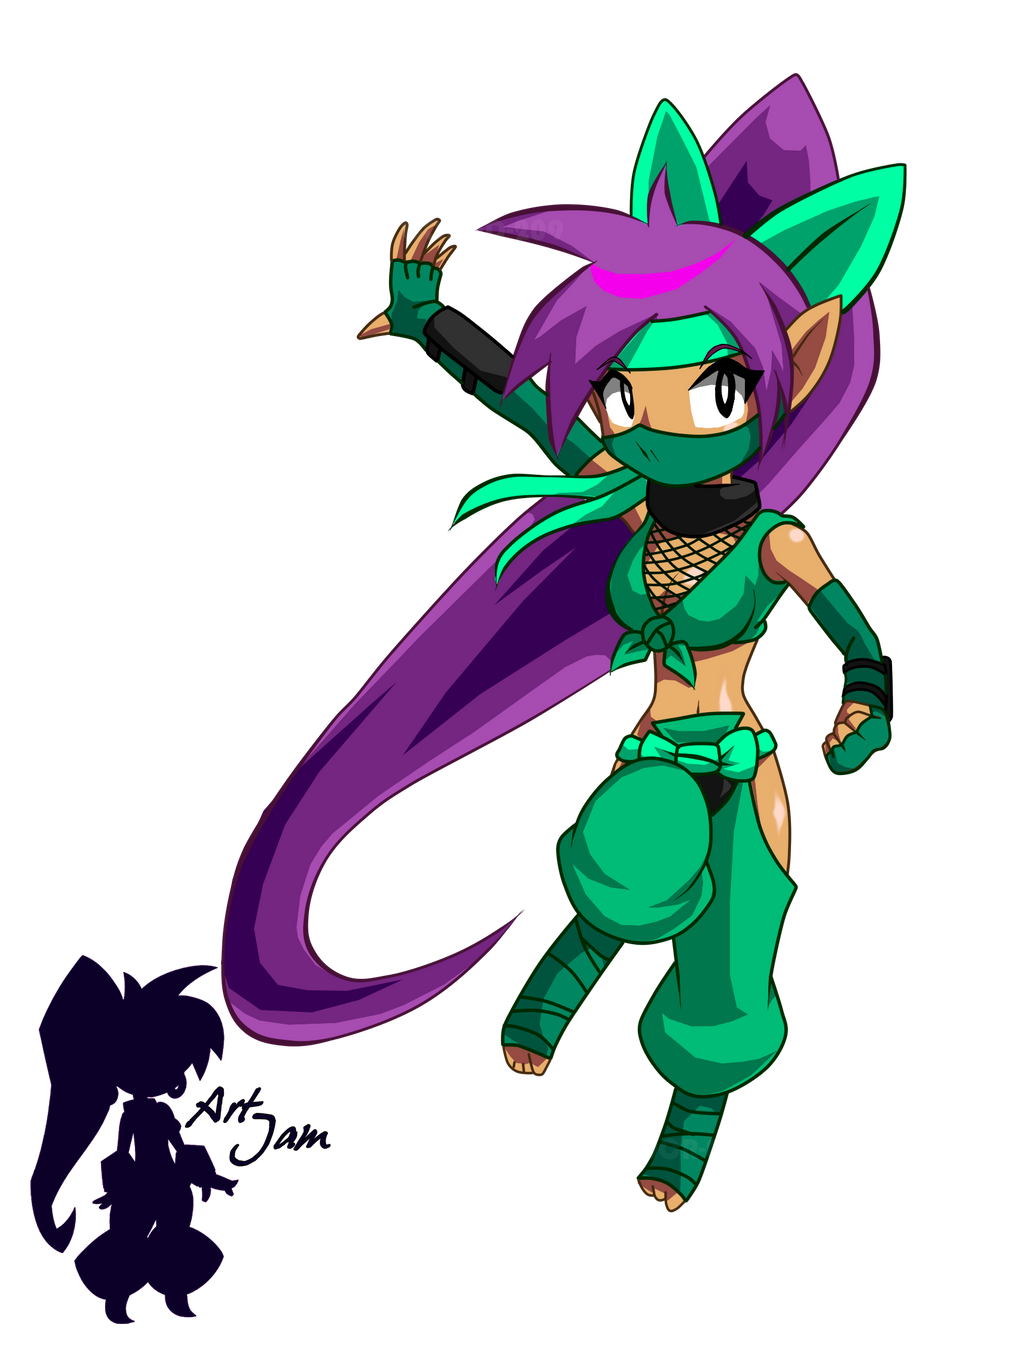 Shantae Half Genie costume ninja by OCR-ED-209 on DeviantArt